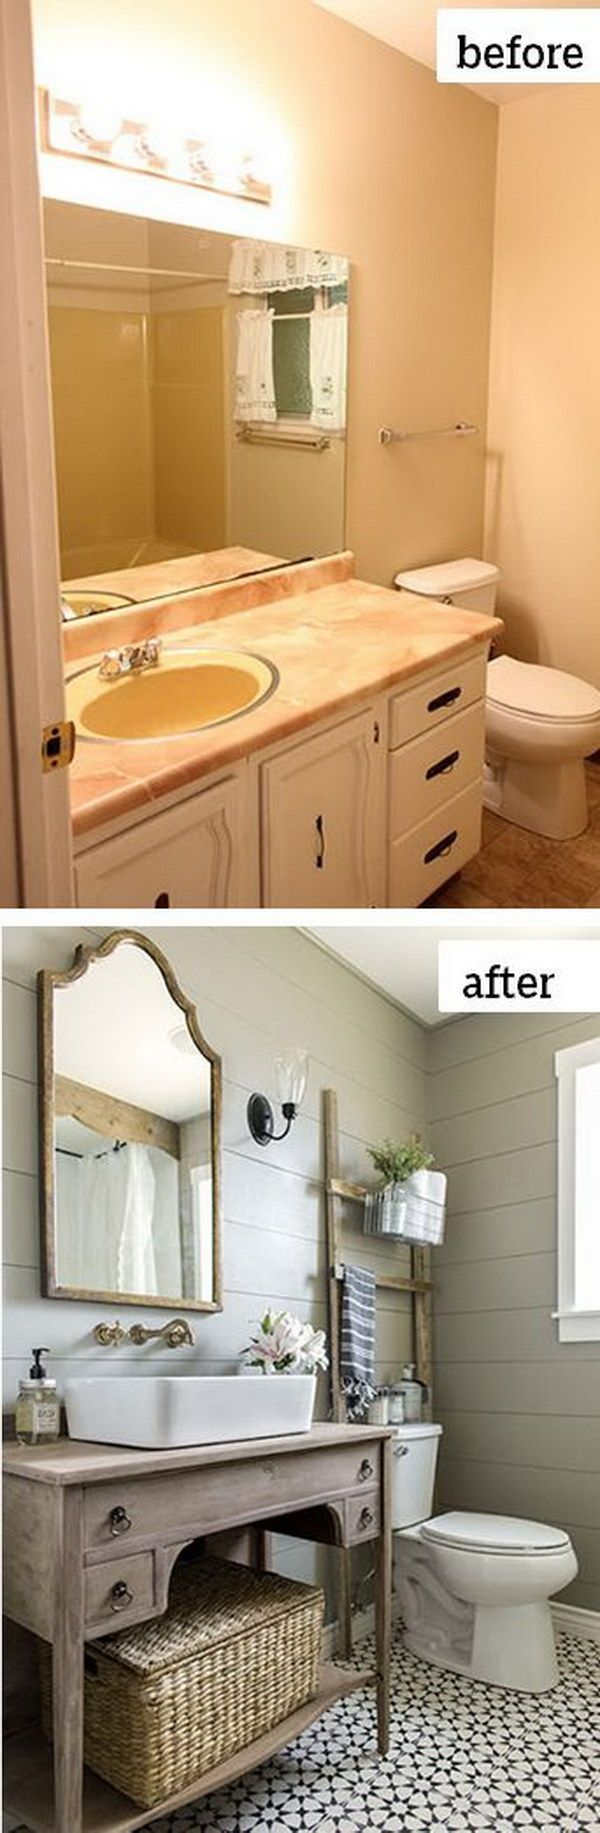 Bathroom Makeover Trends best 25+ bathroom makeovers ideas on pinterest | bathroom ideas